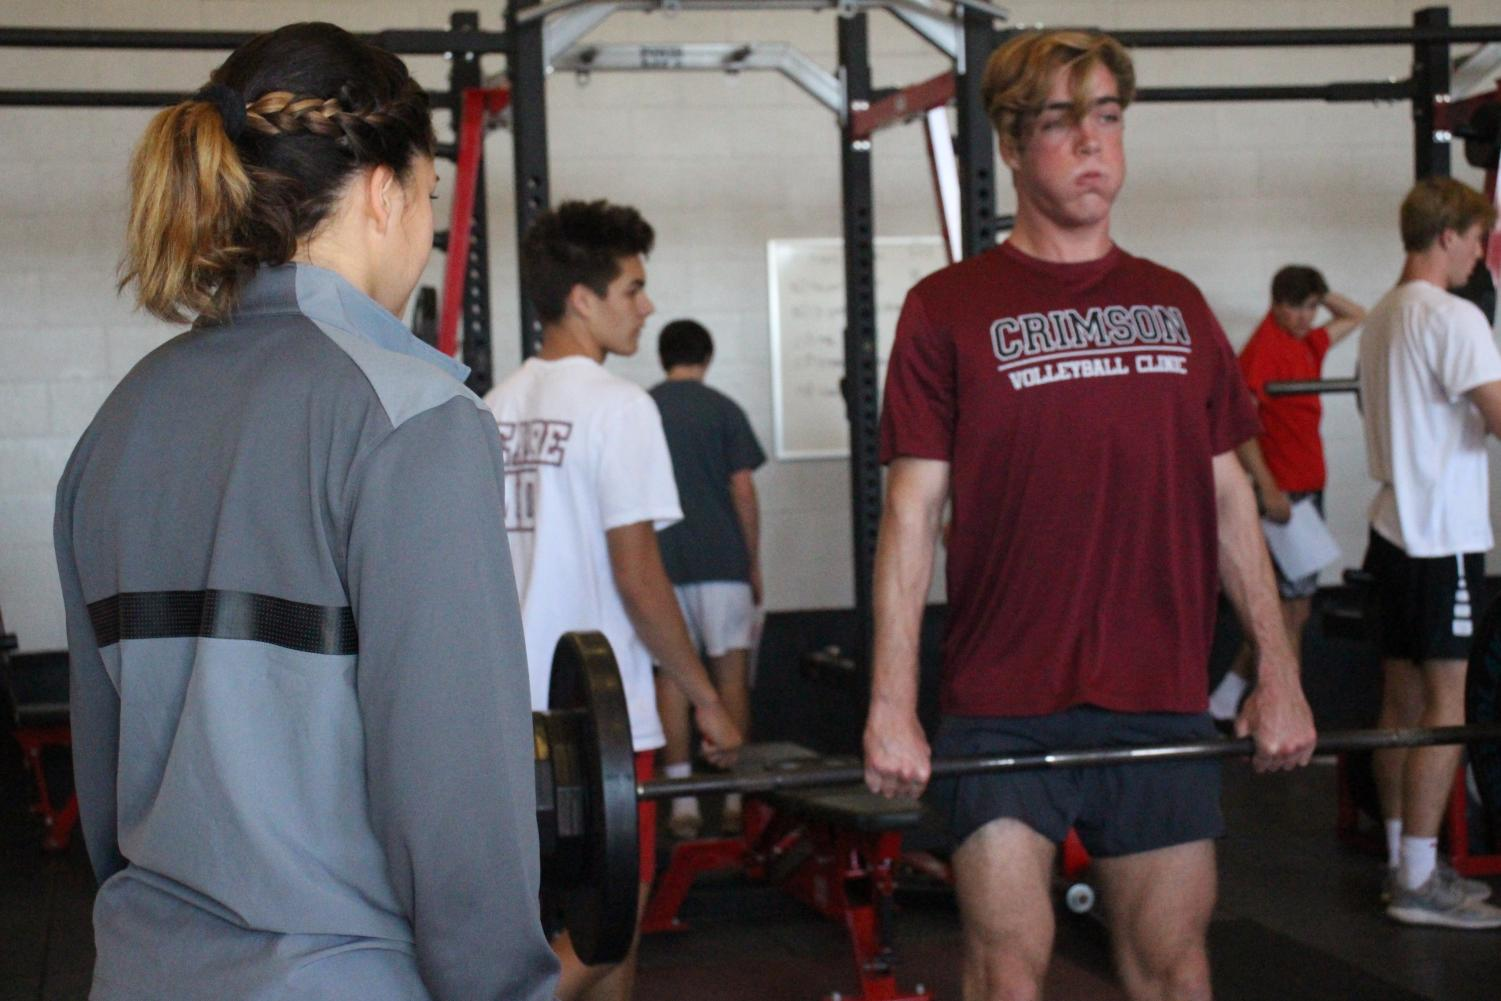 HEAVY+LIFTING%3A+Assistant+strength+and+conditioning+coach+Katie+Guizar+helps+senior+boys+volleyball+player+David+Linkletter+as+he+hang+cleans.+Guizar+has+been+a+coach+at+the+school+for+five+years.+%22I%E2%80%99ve+been+an+athlete+my+whole+life+and+I+remember+the+summer+before+I+went+to+college+I+trained+in+a+facility+and+the+strength+coach...and+I+just+remember+chatting+with+him+and+just+being+intrigued+by+everything+that+he+did+to+make+me+better+and+that+was+just+the+initial+start+of+me+wanting+to+get+into+the+same+industry%2C%22+Guizar+said.%0A